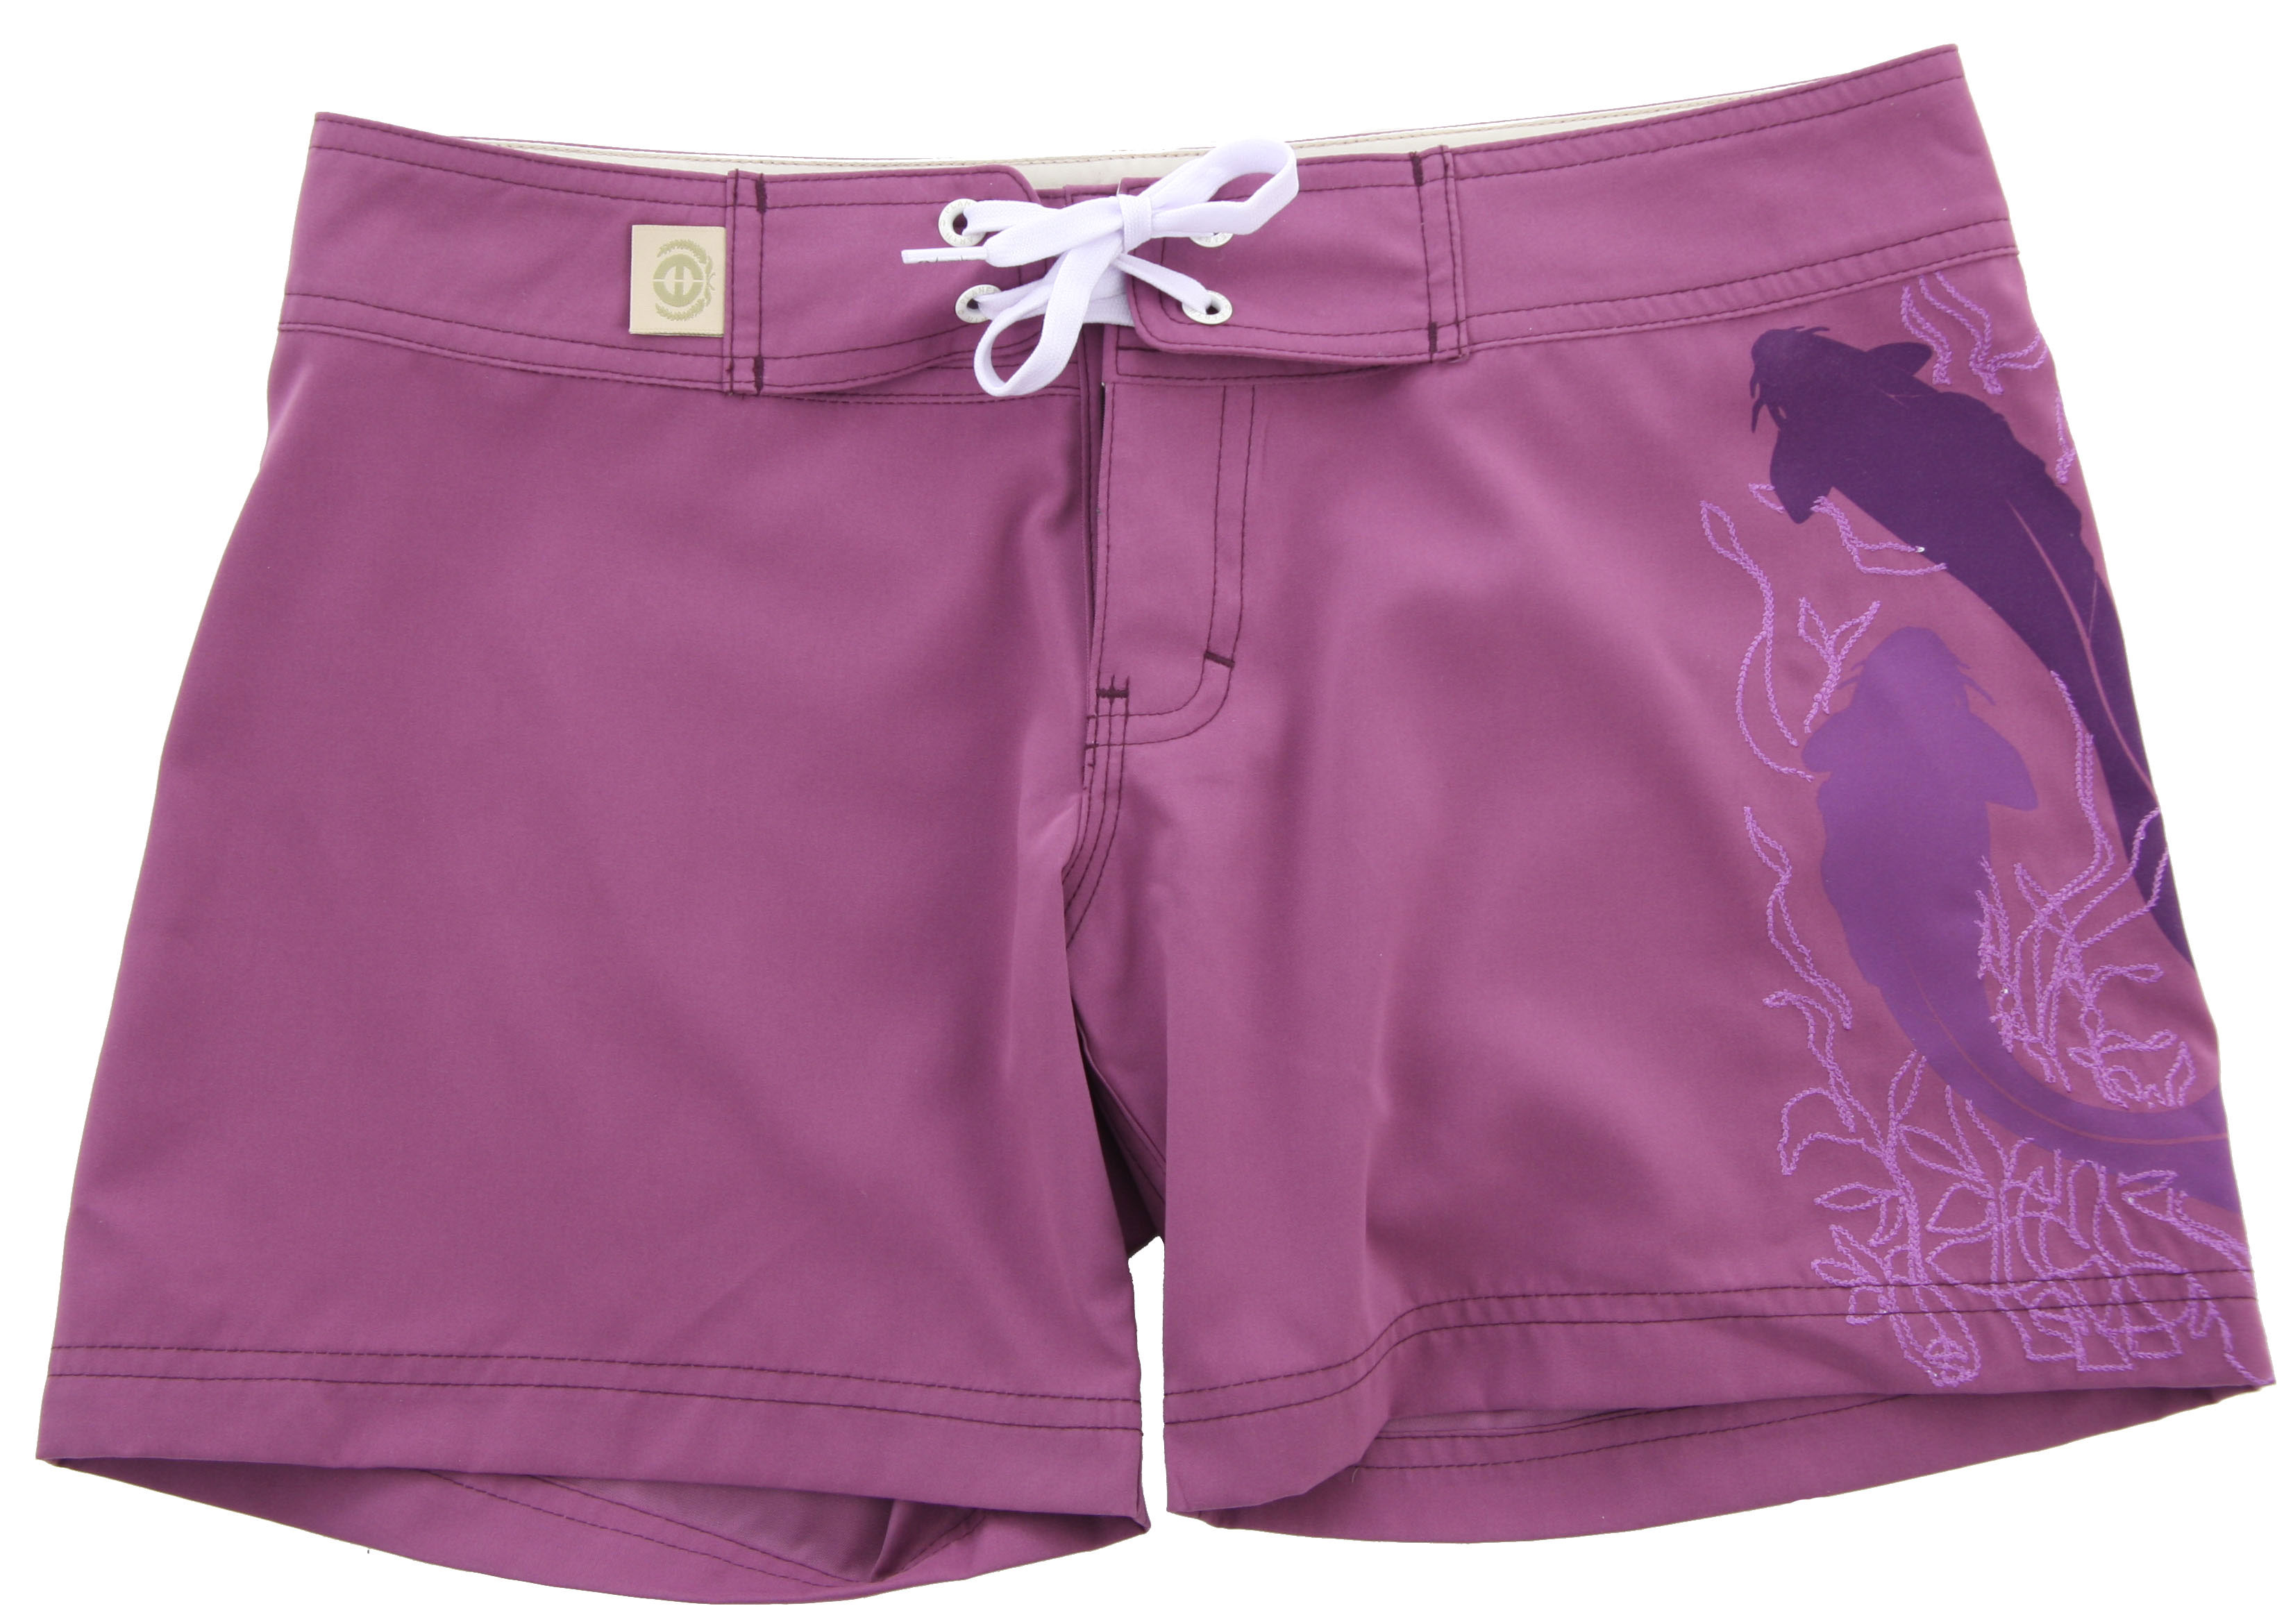 Surf Planet Earth Meyers Boardshorts Orchid - $19.95